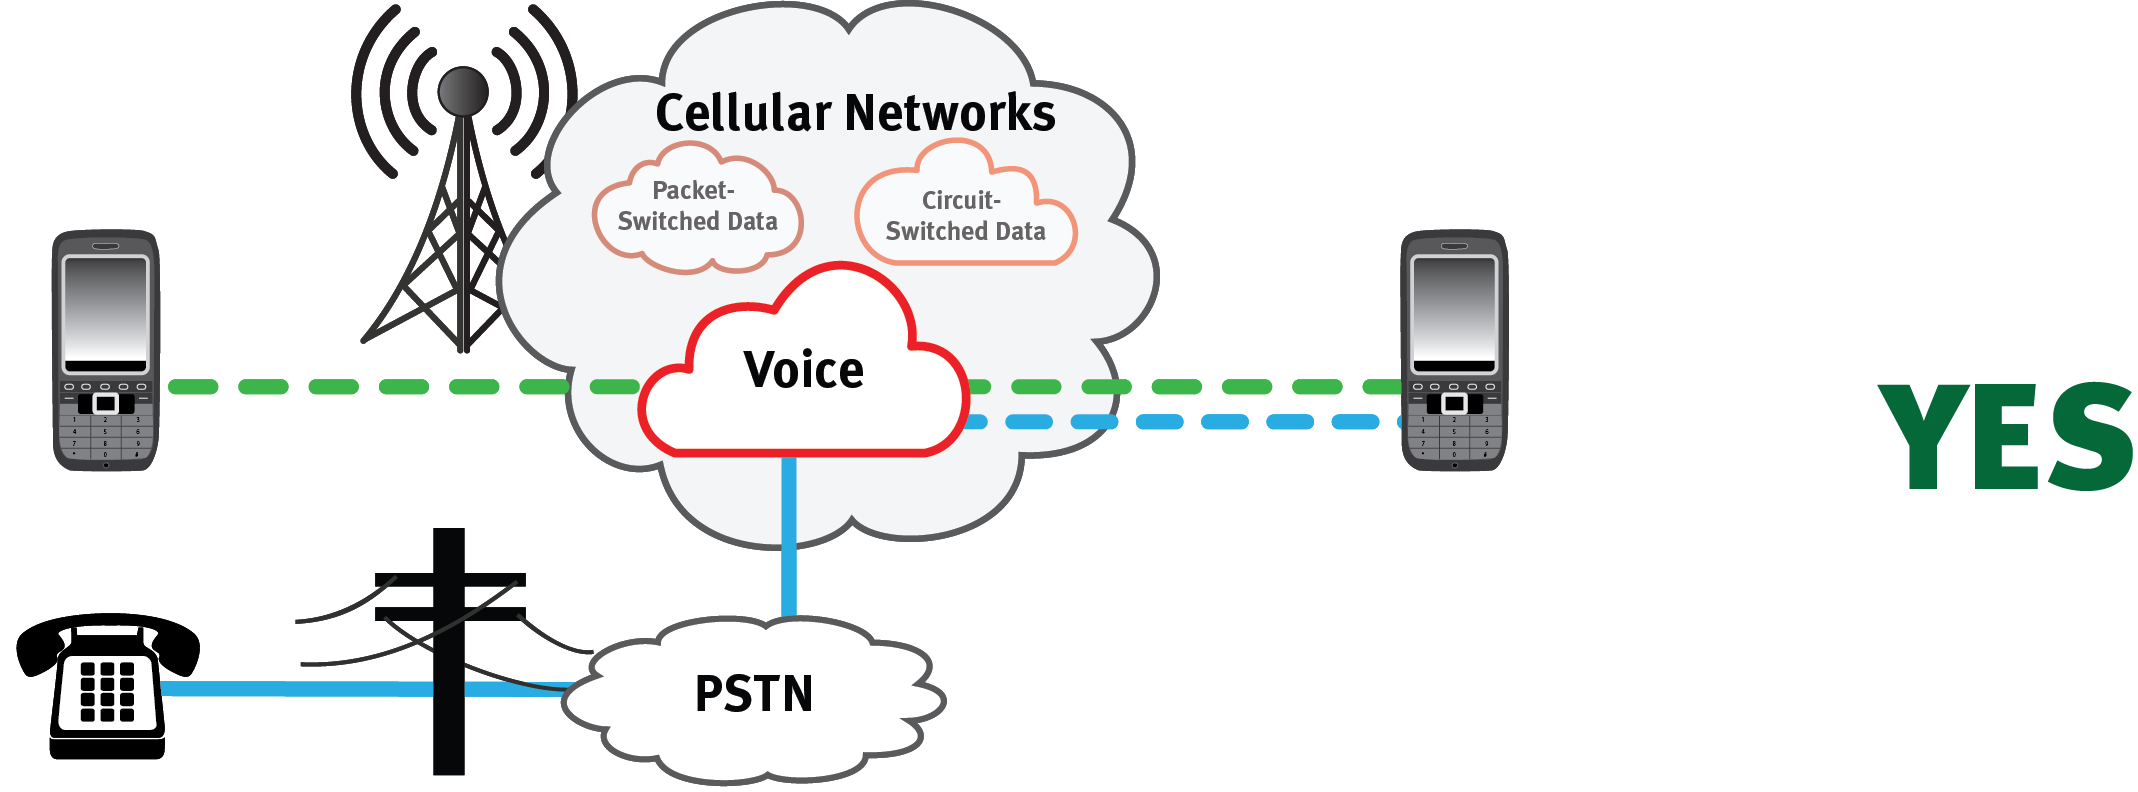 PSTN Voice Data Network between land lines and cell phones